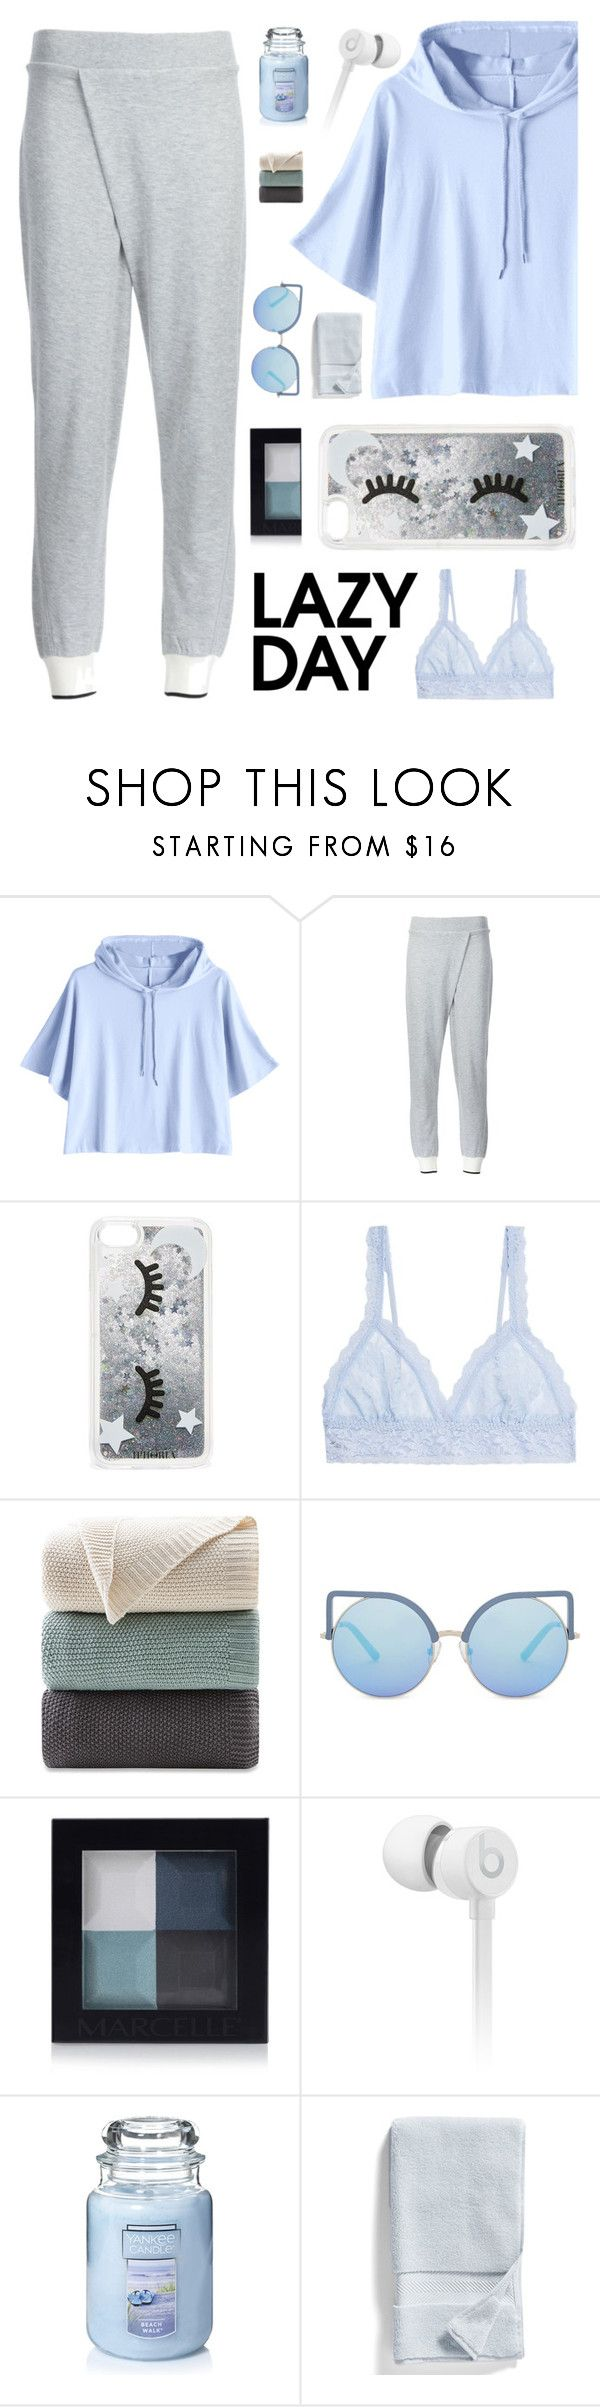 """dusk till dawn"" by verenagyuneth on Polyvore featuring rag & bone, Iphoria, Hanky Panky, Ink & Ivy, Matthew Williamson, Beats by Dr. Dre, Yankee Candle, Nordstrom and LazyDay"